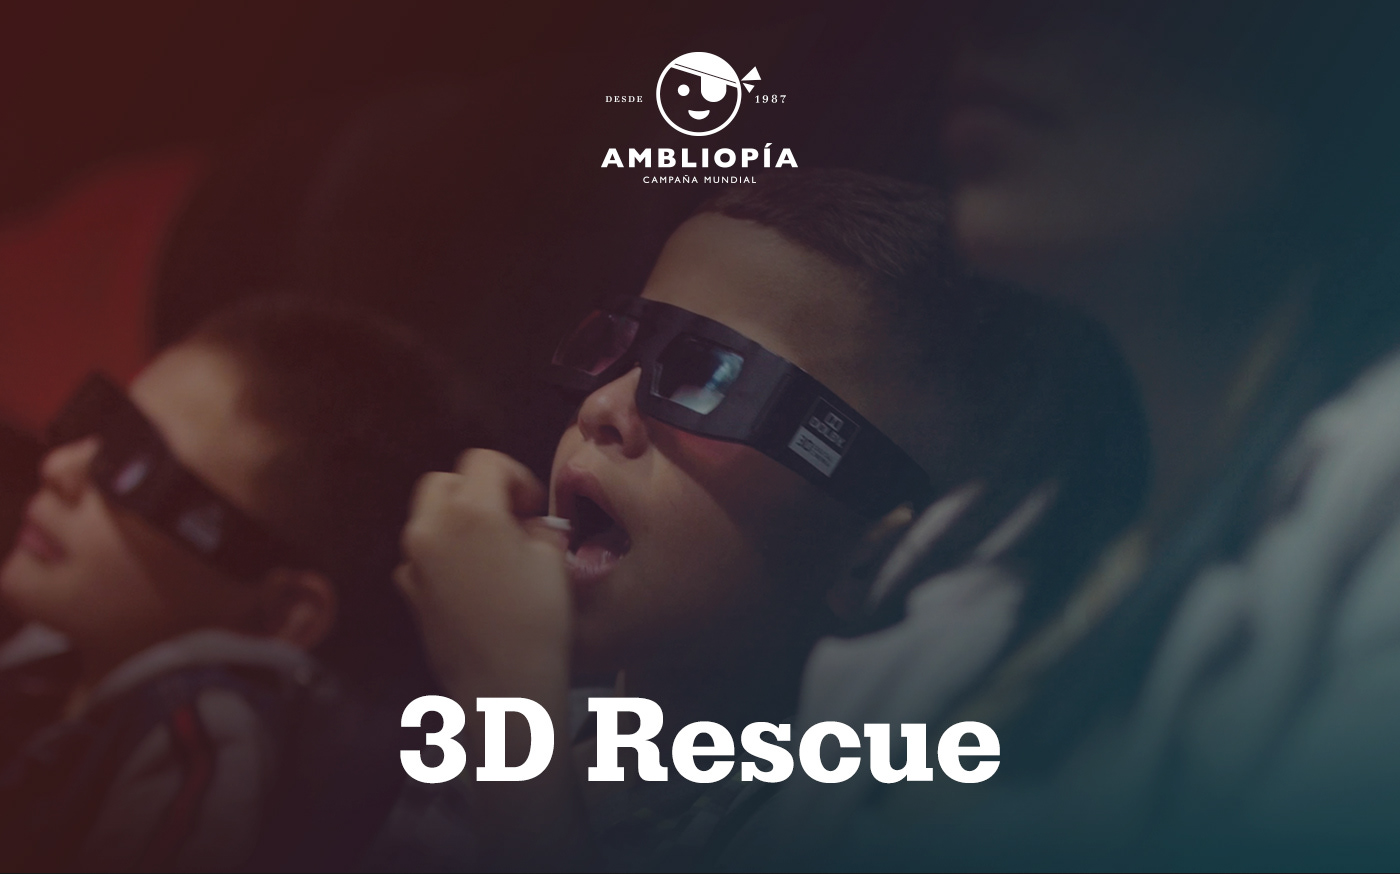 3D RESCUE / AMBLYOPIA WORLD CAMPAIGN on Behance